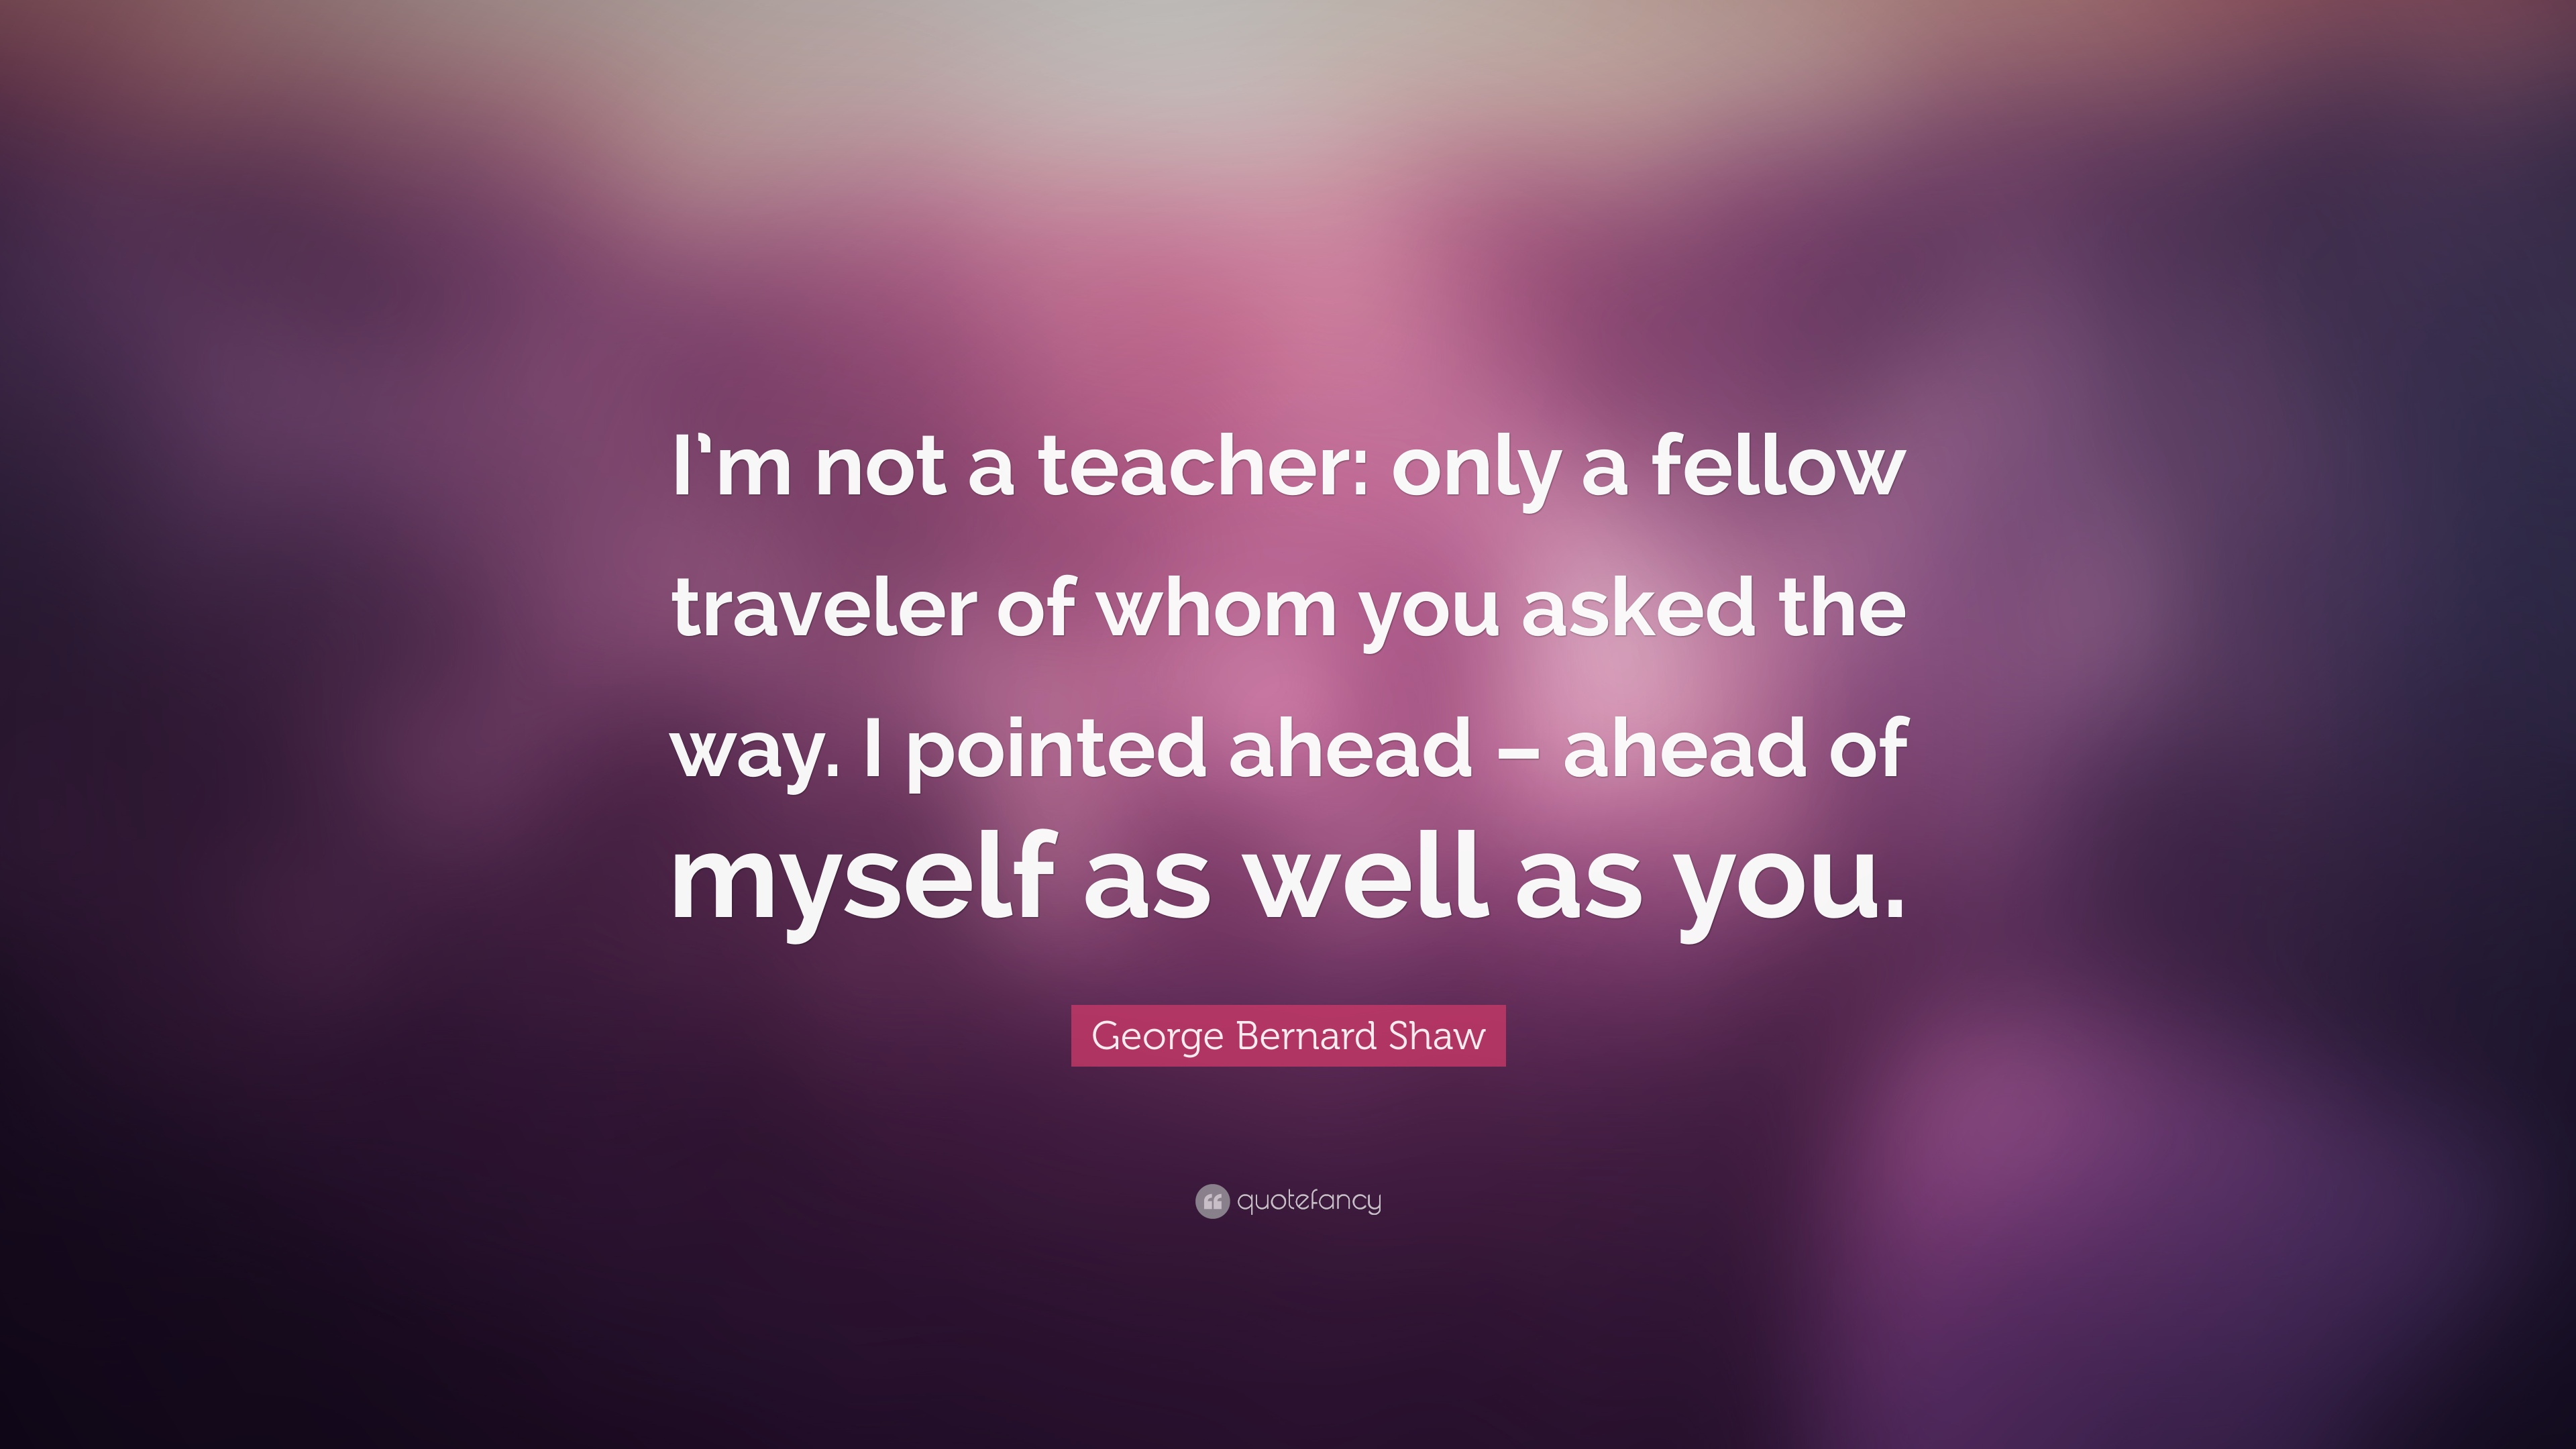 George Bernard Shaw Quote I M Not A Teacher Only A Fellow Traveler Of Whom You Asked The Way I Pointed Ahead Ahead Of Myself As Well As You 12 Wallpapers Quotefancy